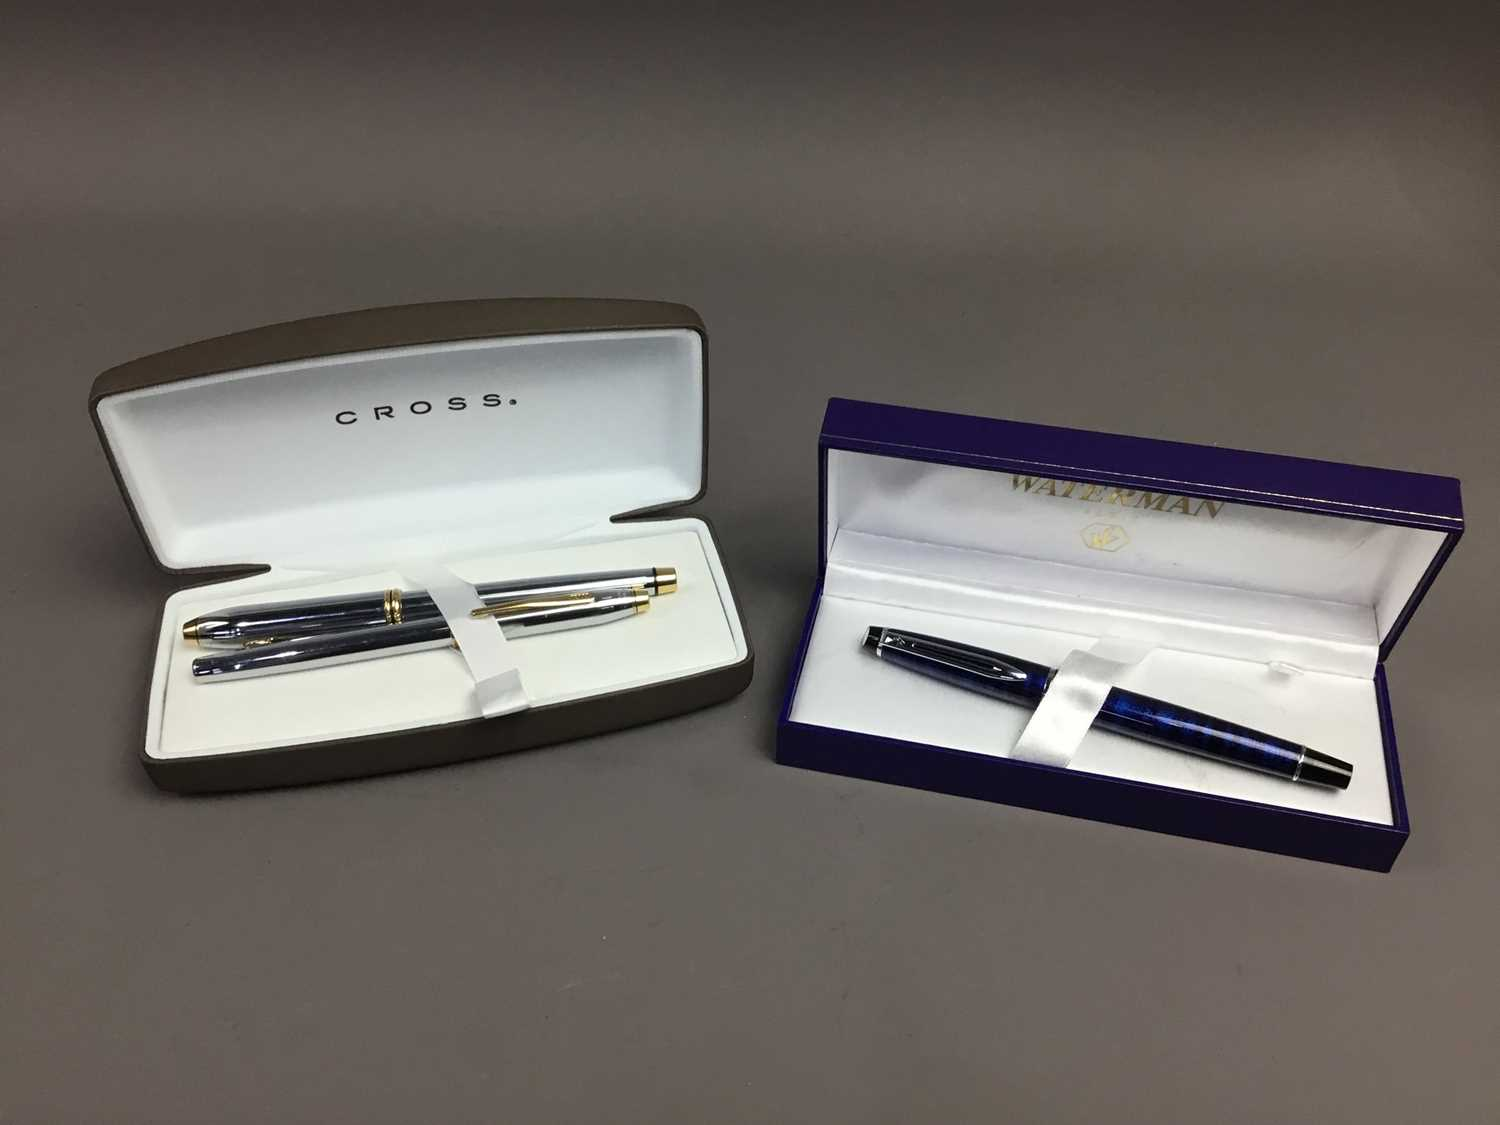 Lot 50 - A LOT OF TWO CROSS FOUNTAIN PENS ALONG WITH ANOTHER